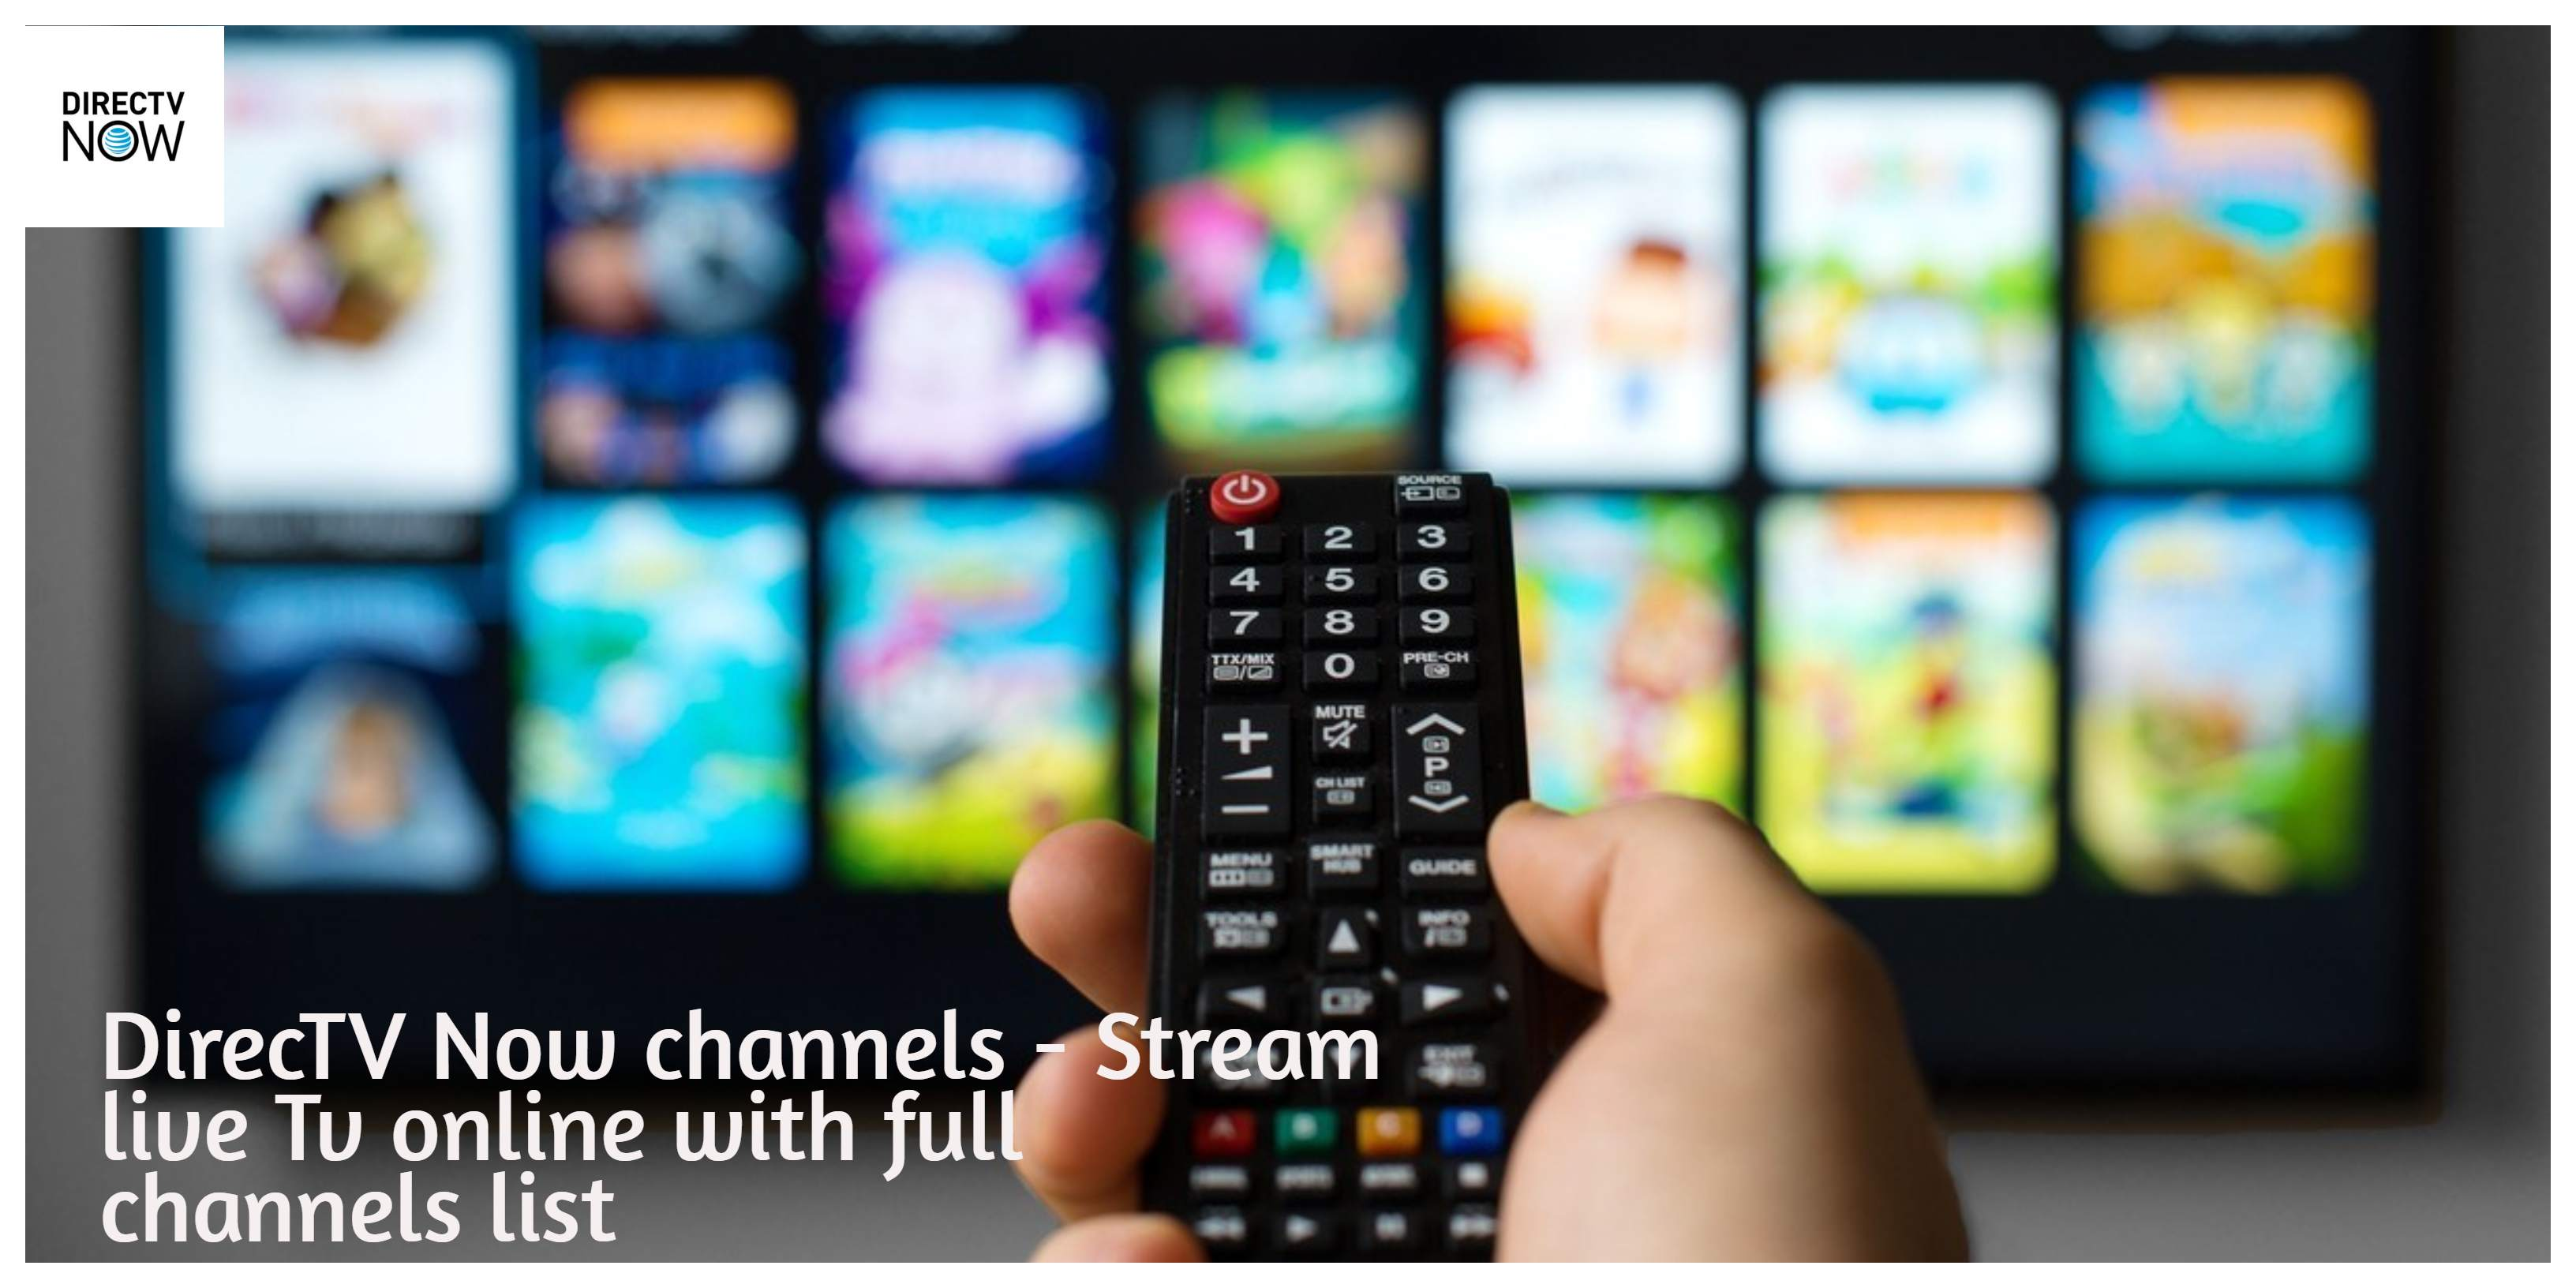 Directv Now channel